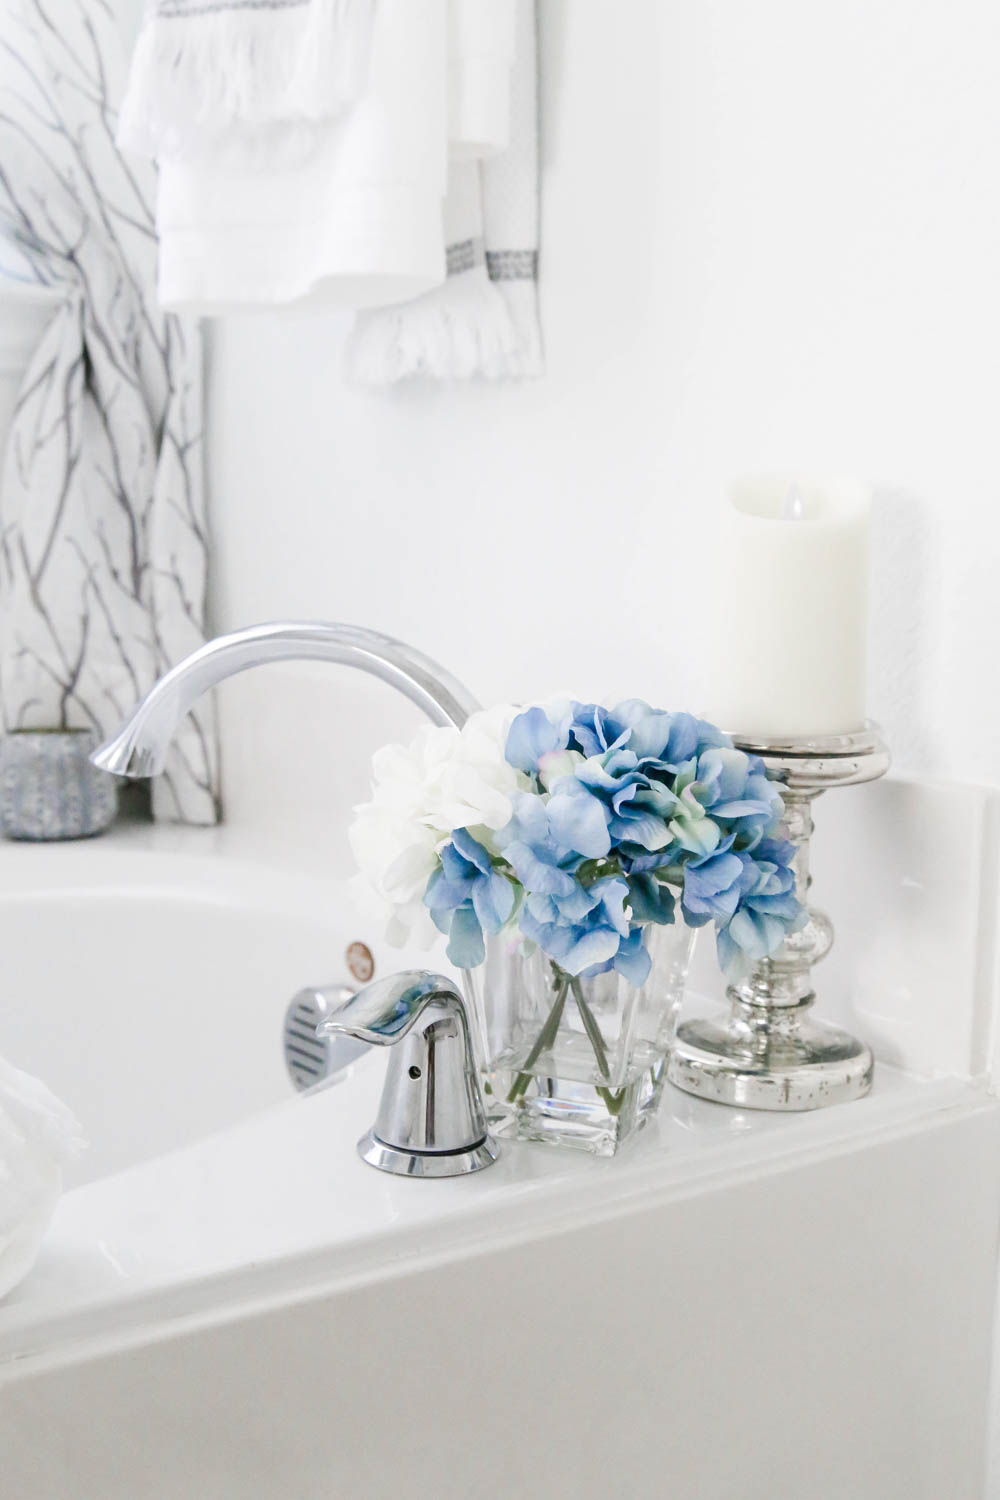 Create ambience with flowers and candles. #AtHomeStores #AtHomeFinds #ABlissfulNest #ad